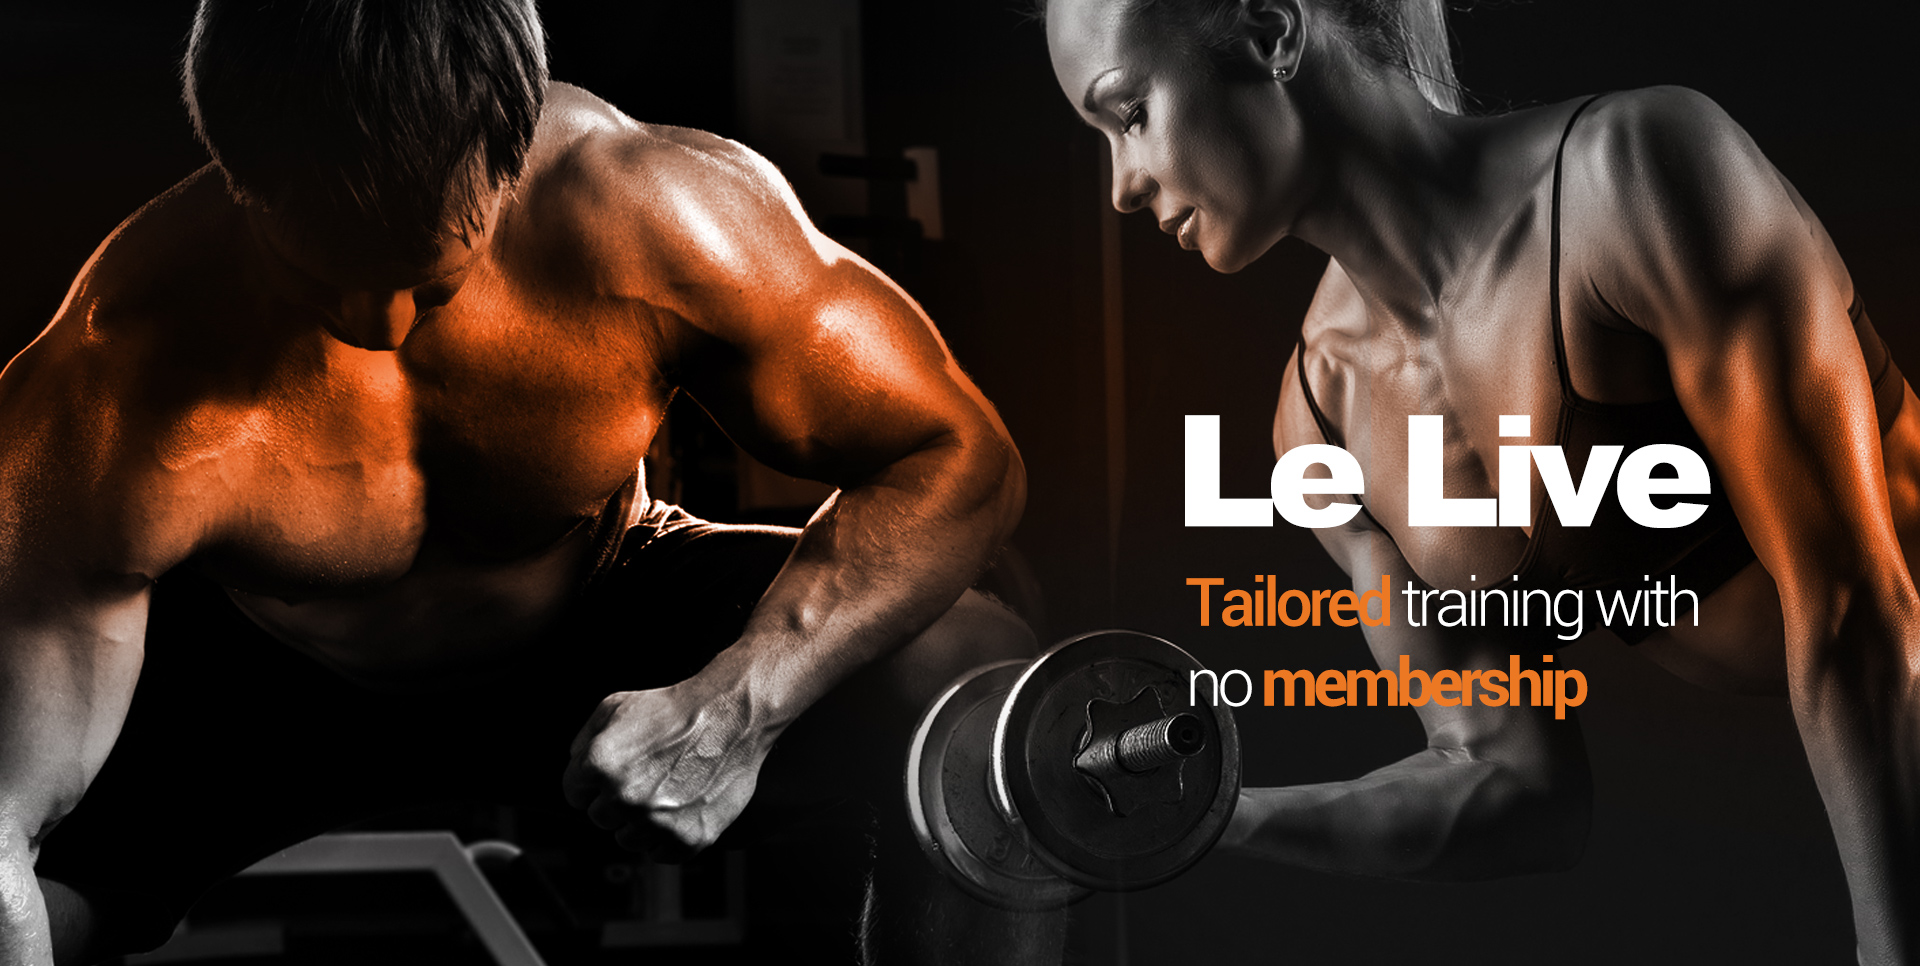 tailored training with no membership